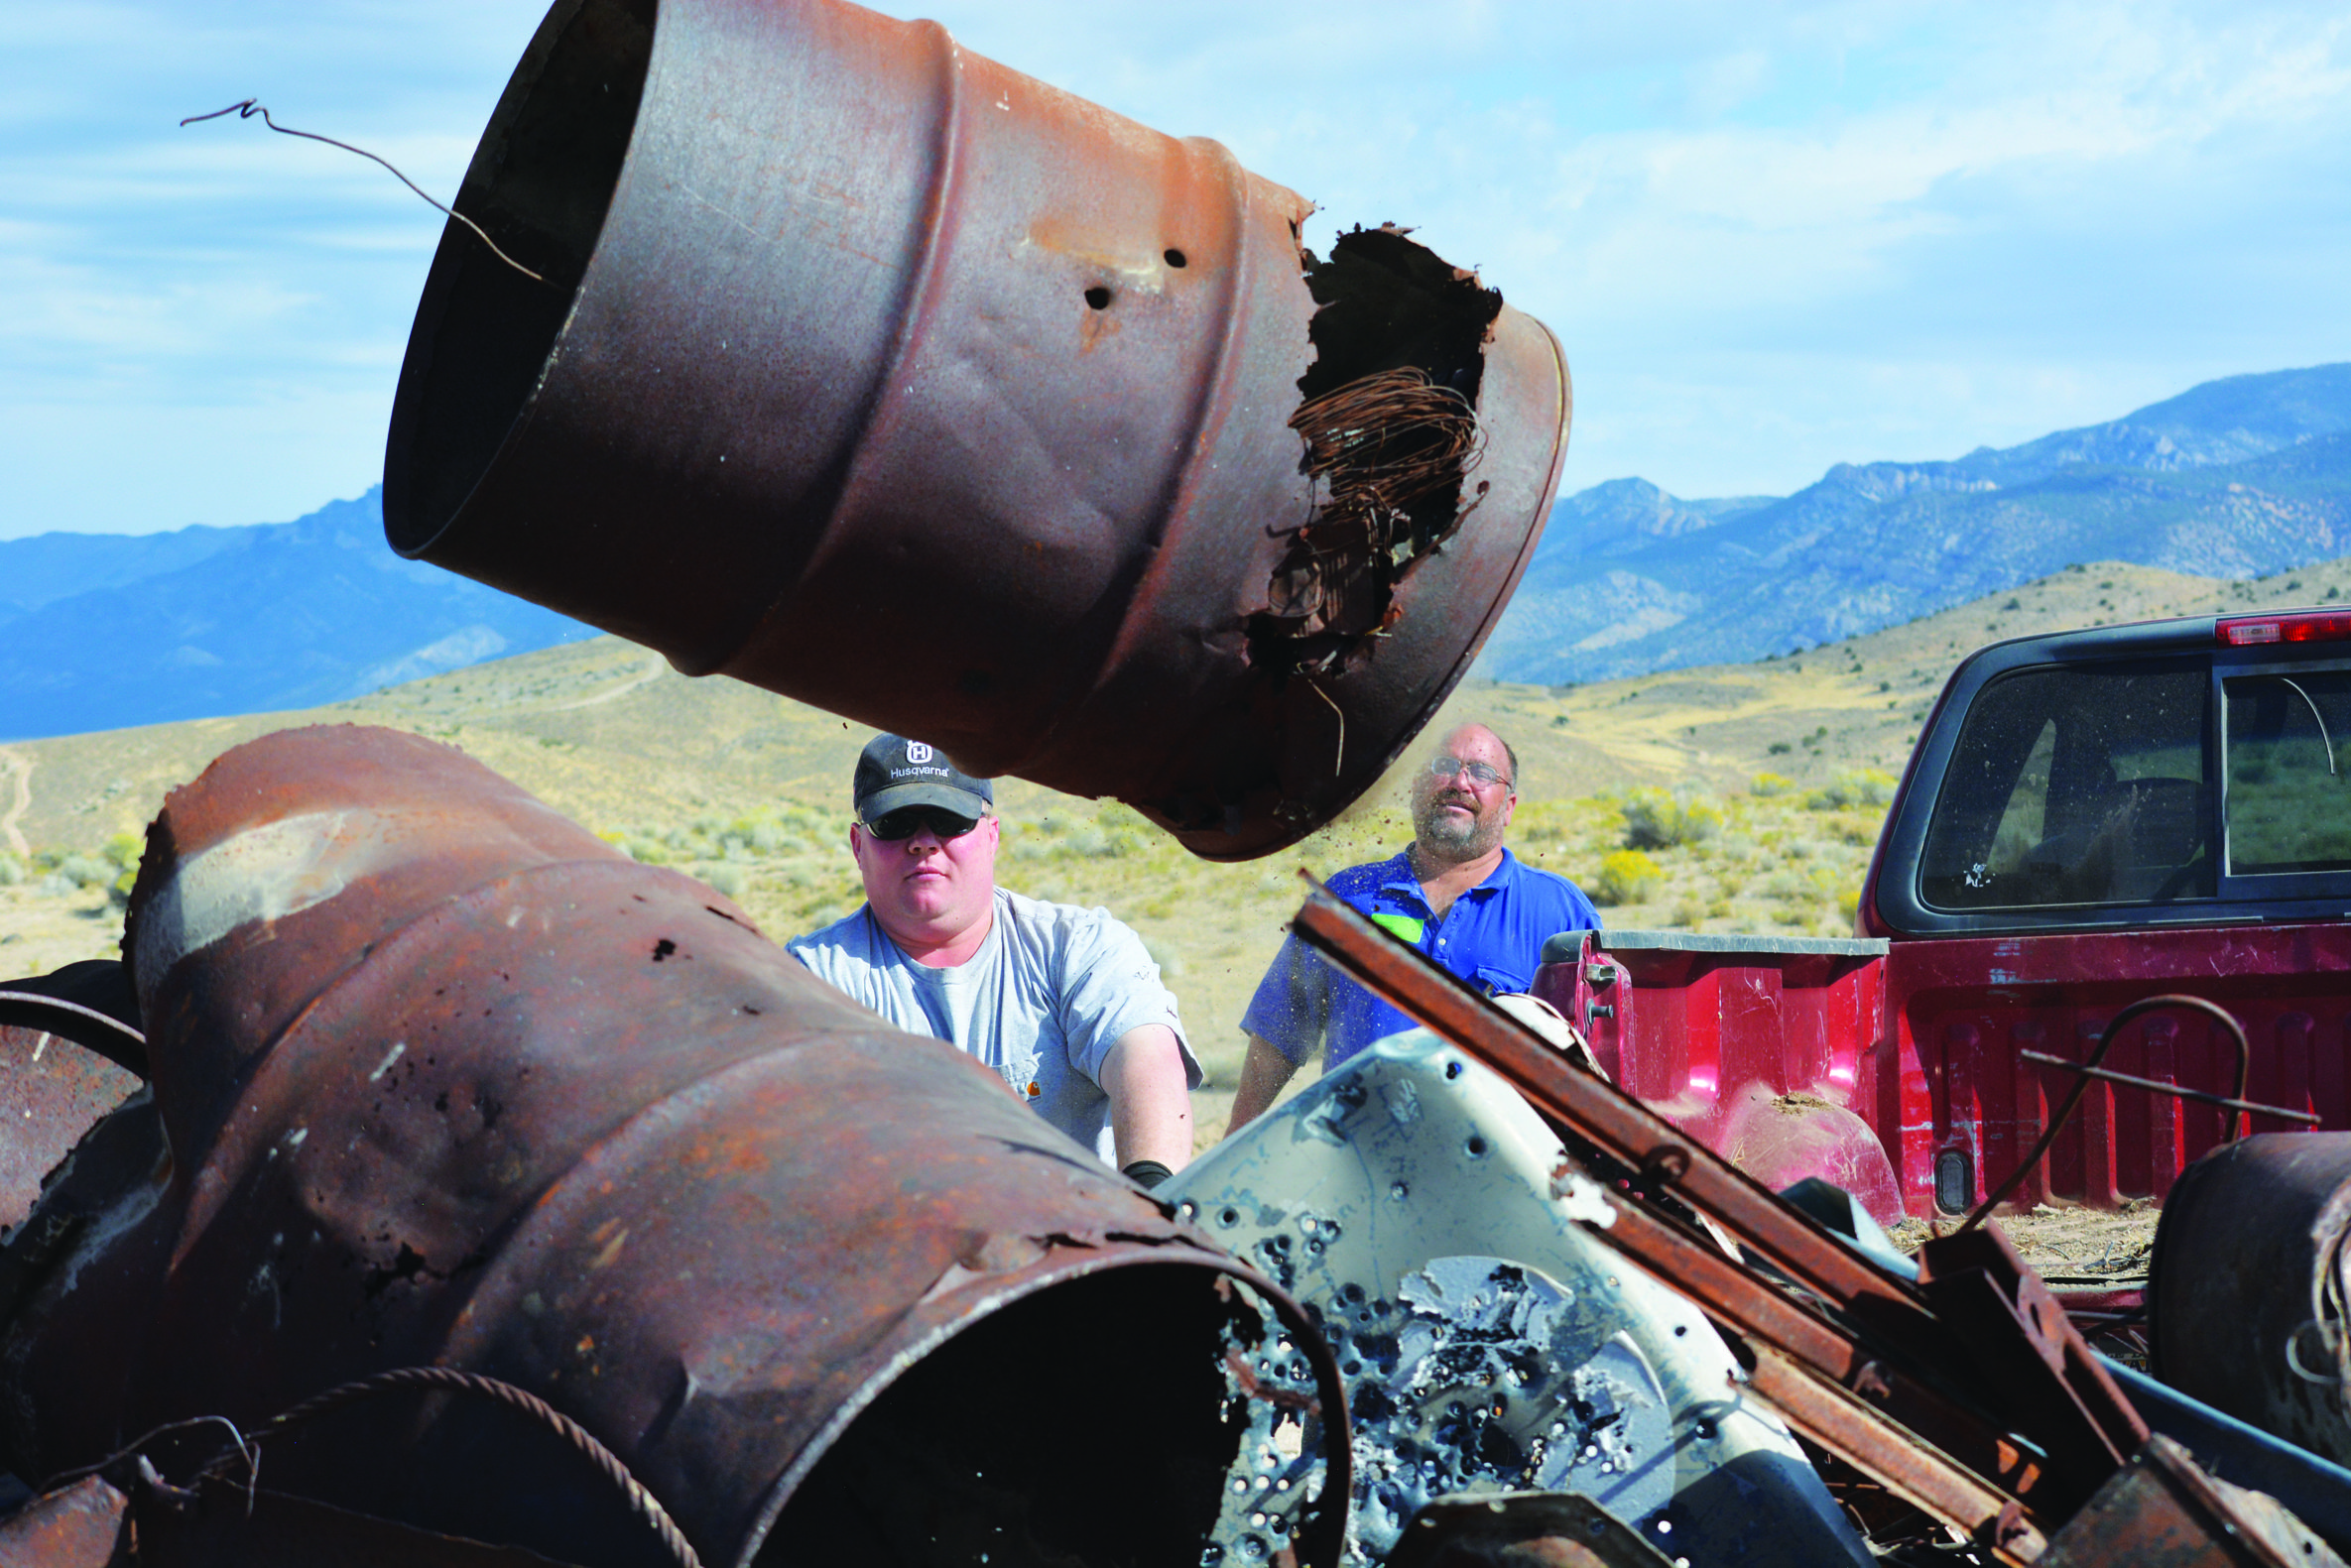 Lund community turns out for NPLD and Eagle Scout service project